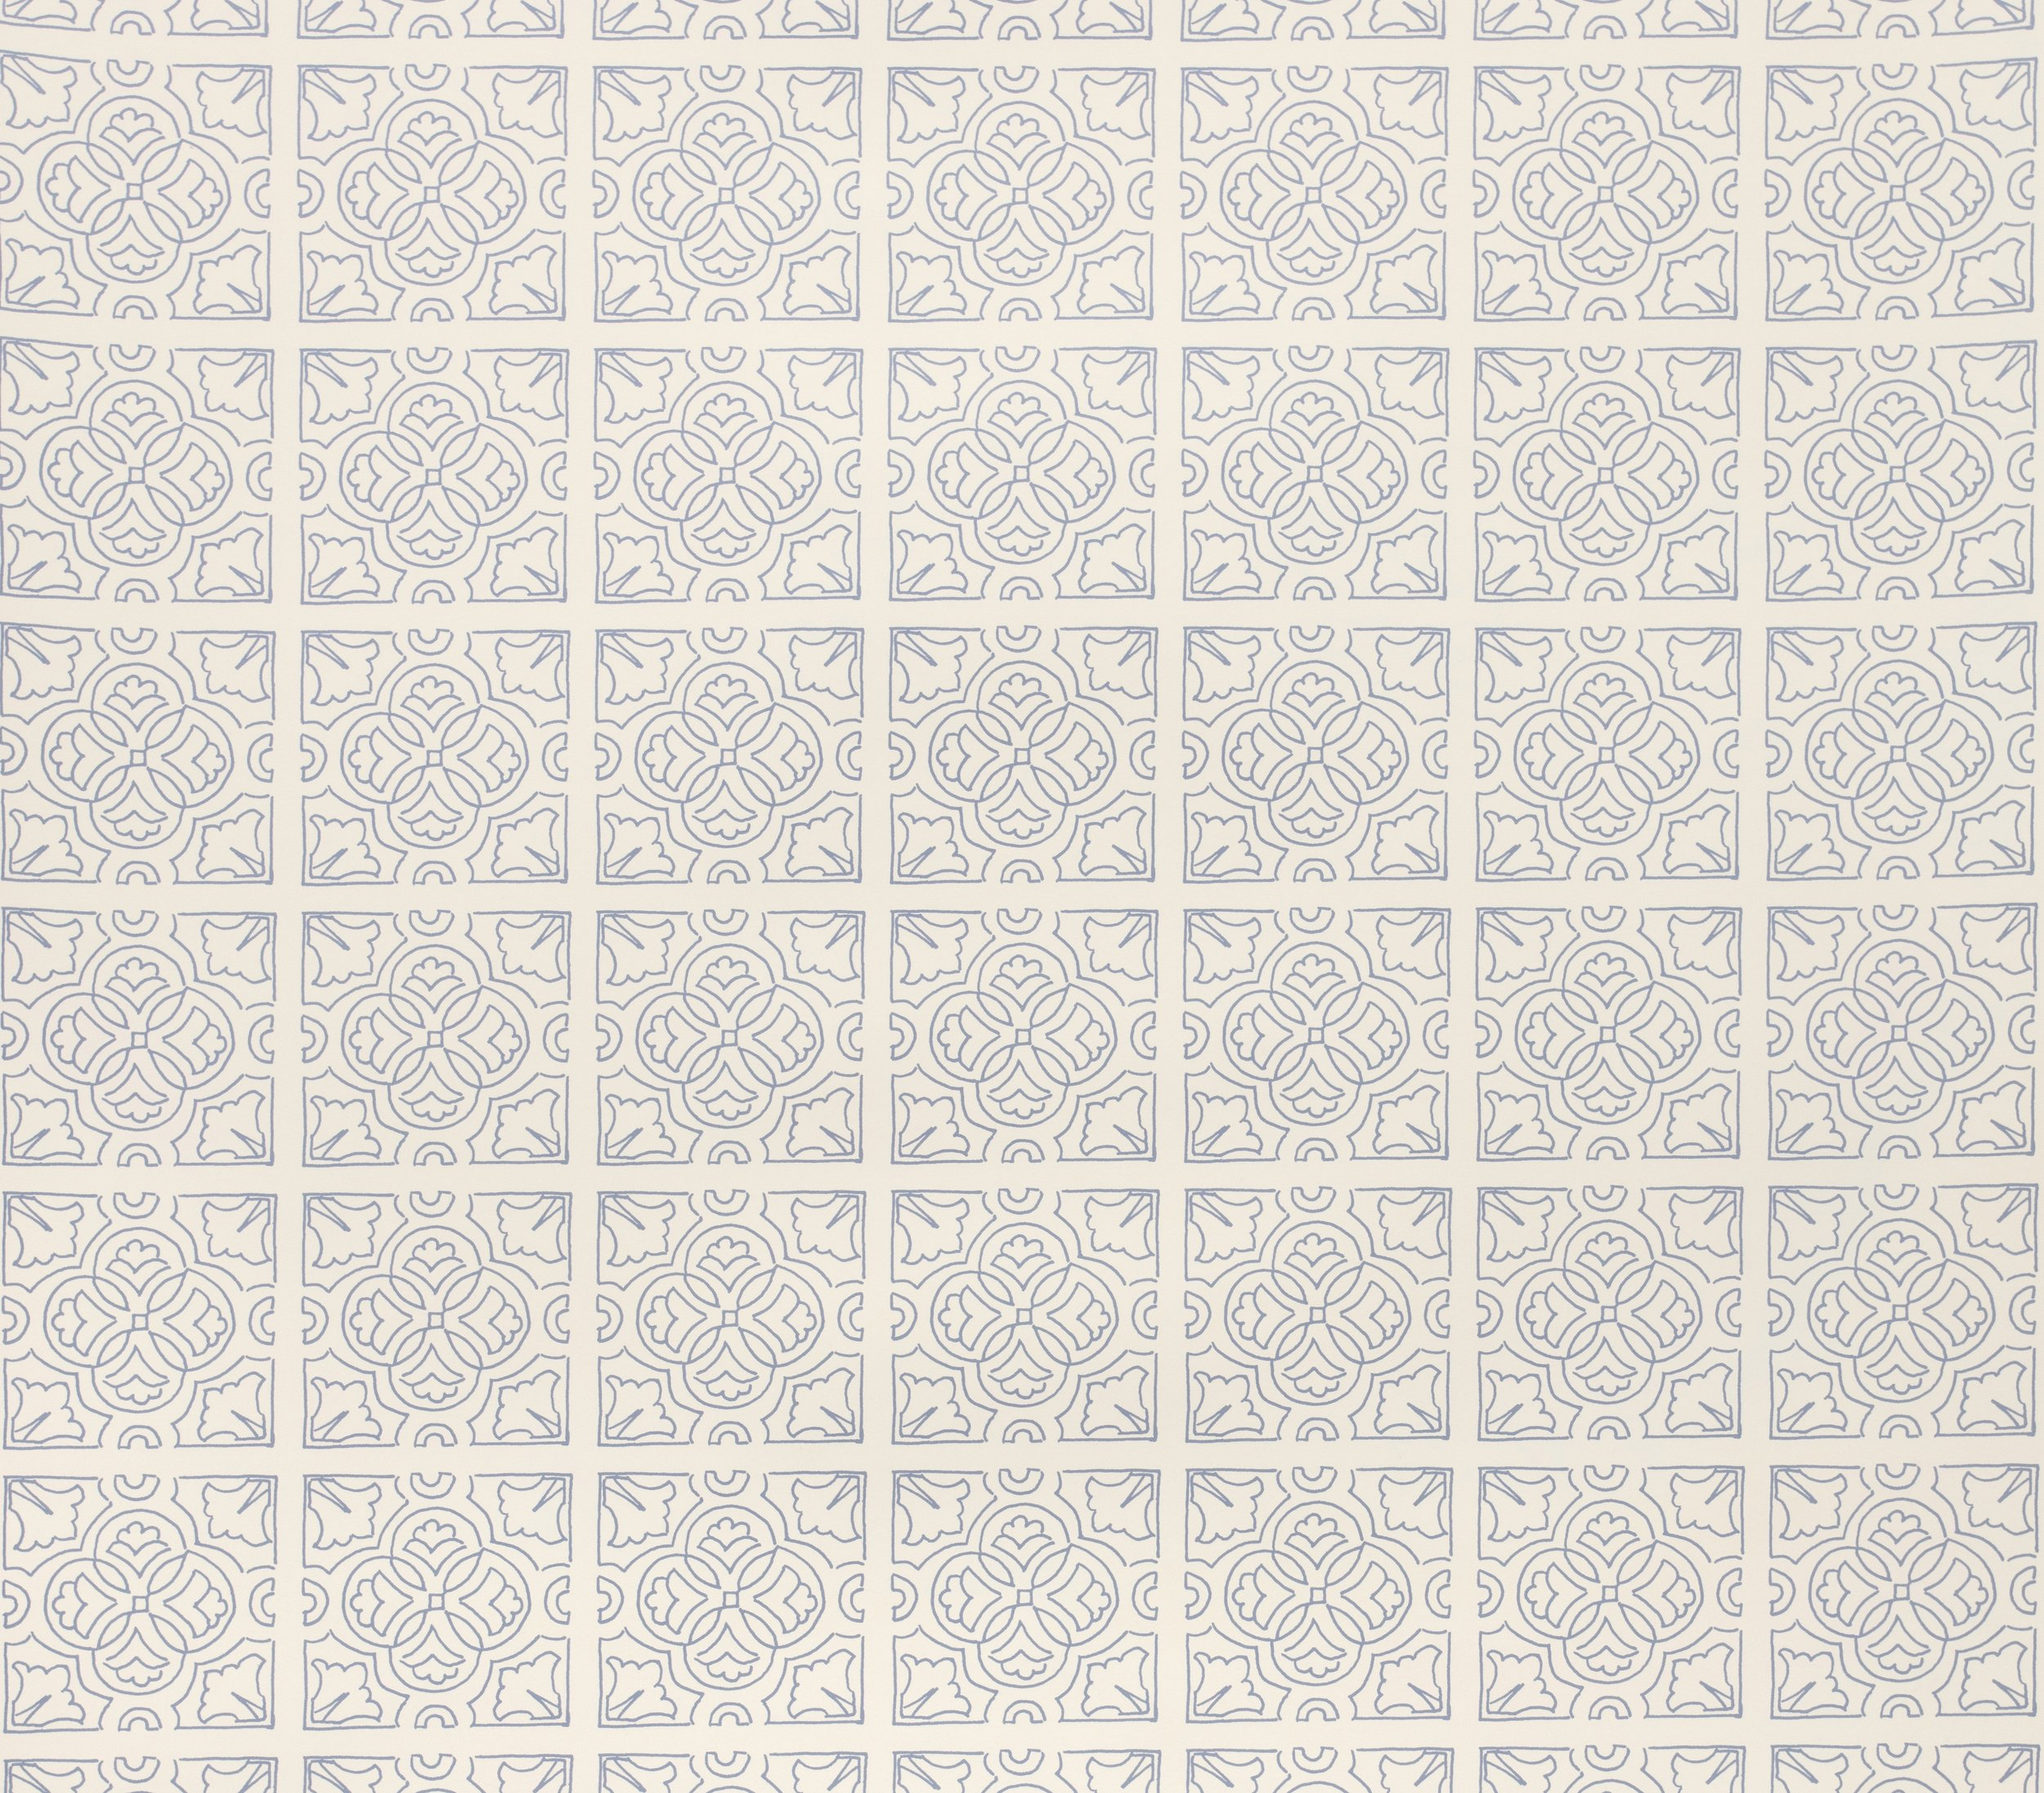 Irish Tile Wallpaper - Wedgewood Blue